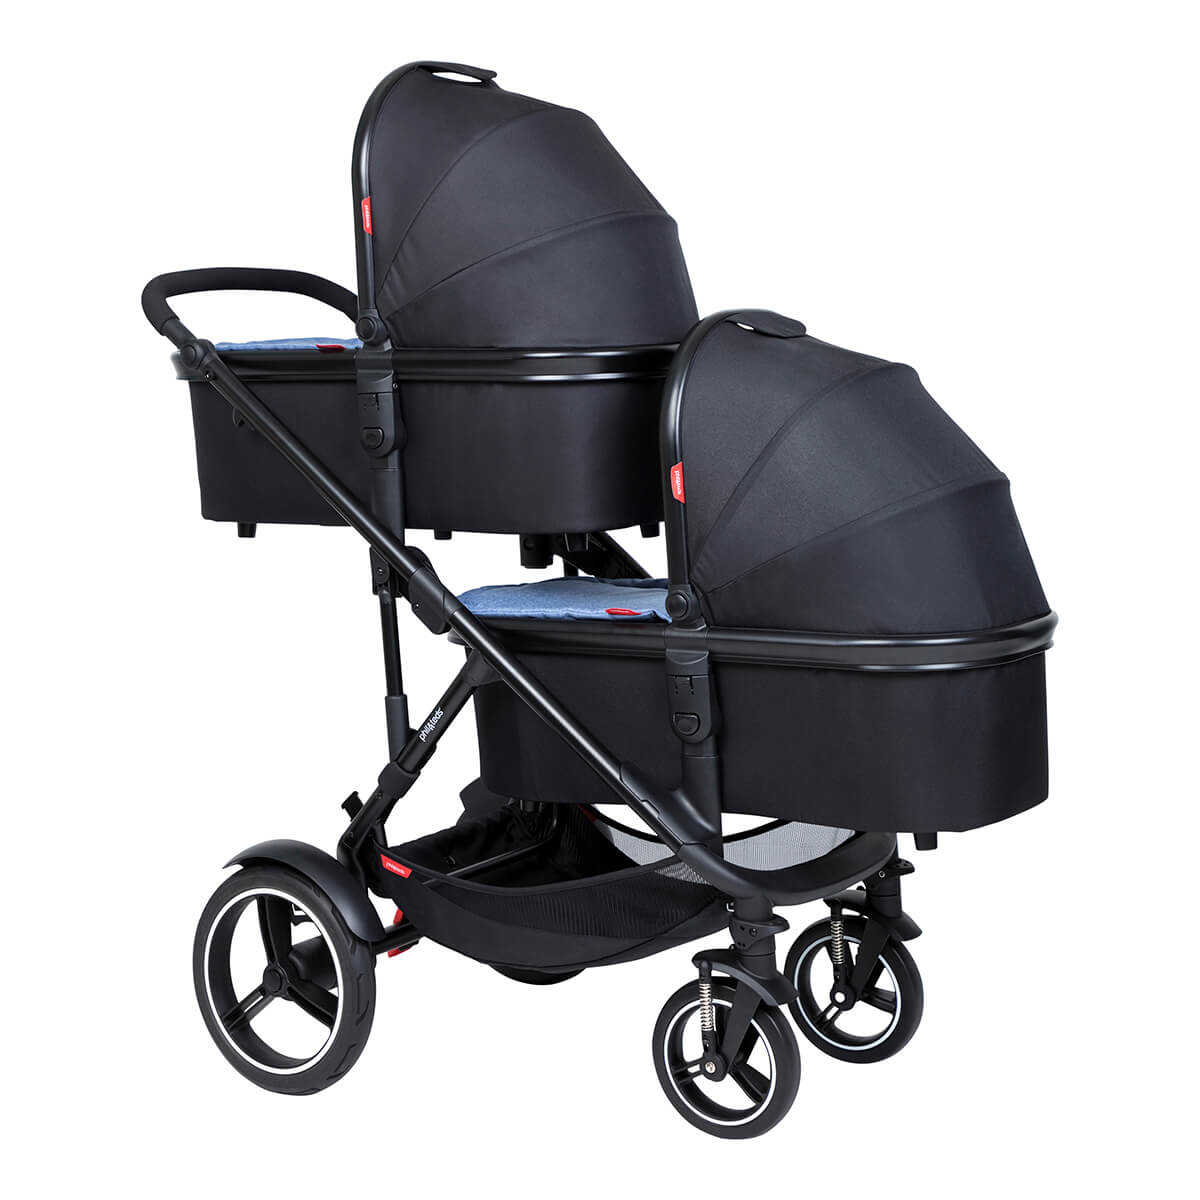 https://cdn.accentuate.io/4511397118049/19793940447402/philteds-voyager-inline-buggy-with-double-snug-carrycots-v1626485395732.jpg?1200x1200